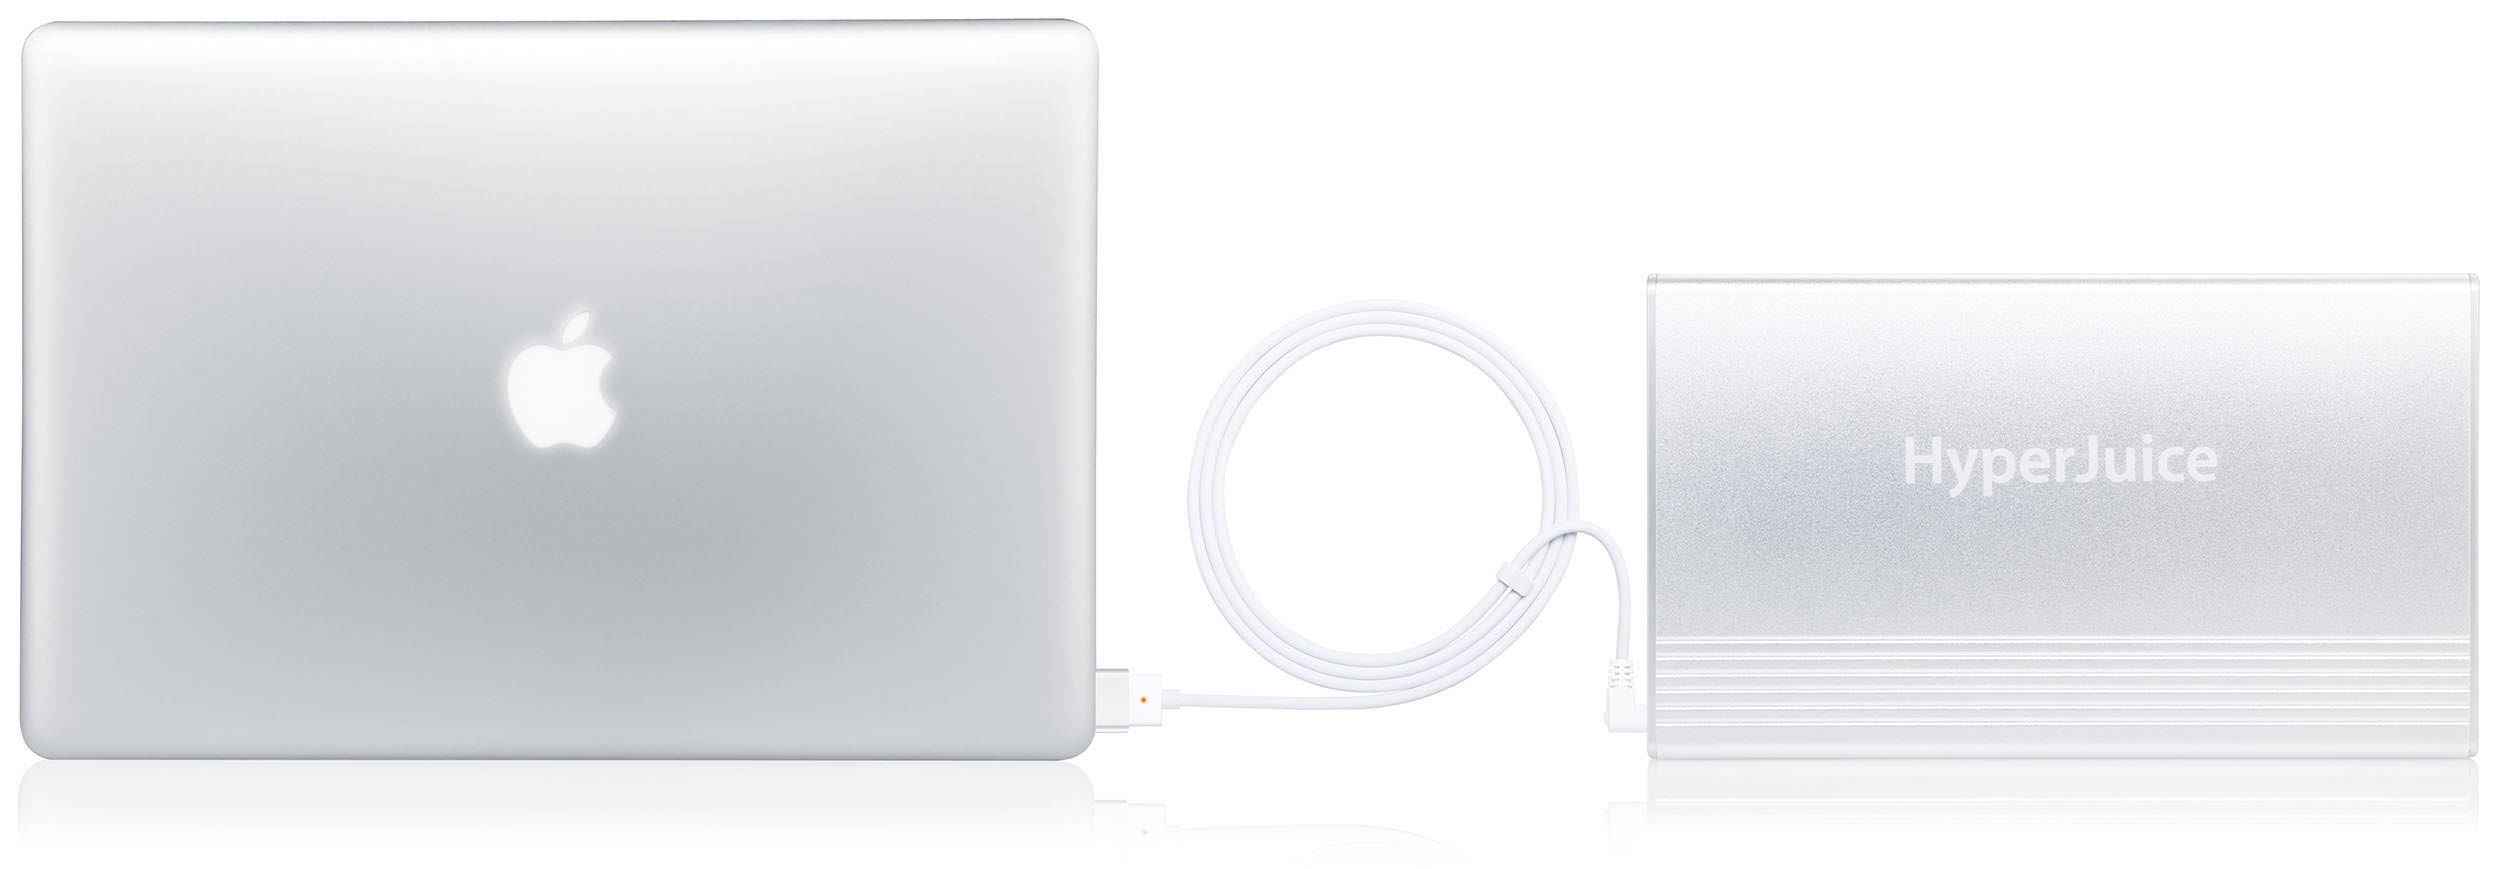 Hperjuice power bank connected with macbook pro